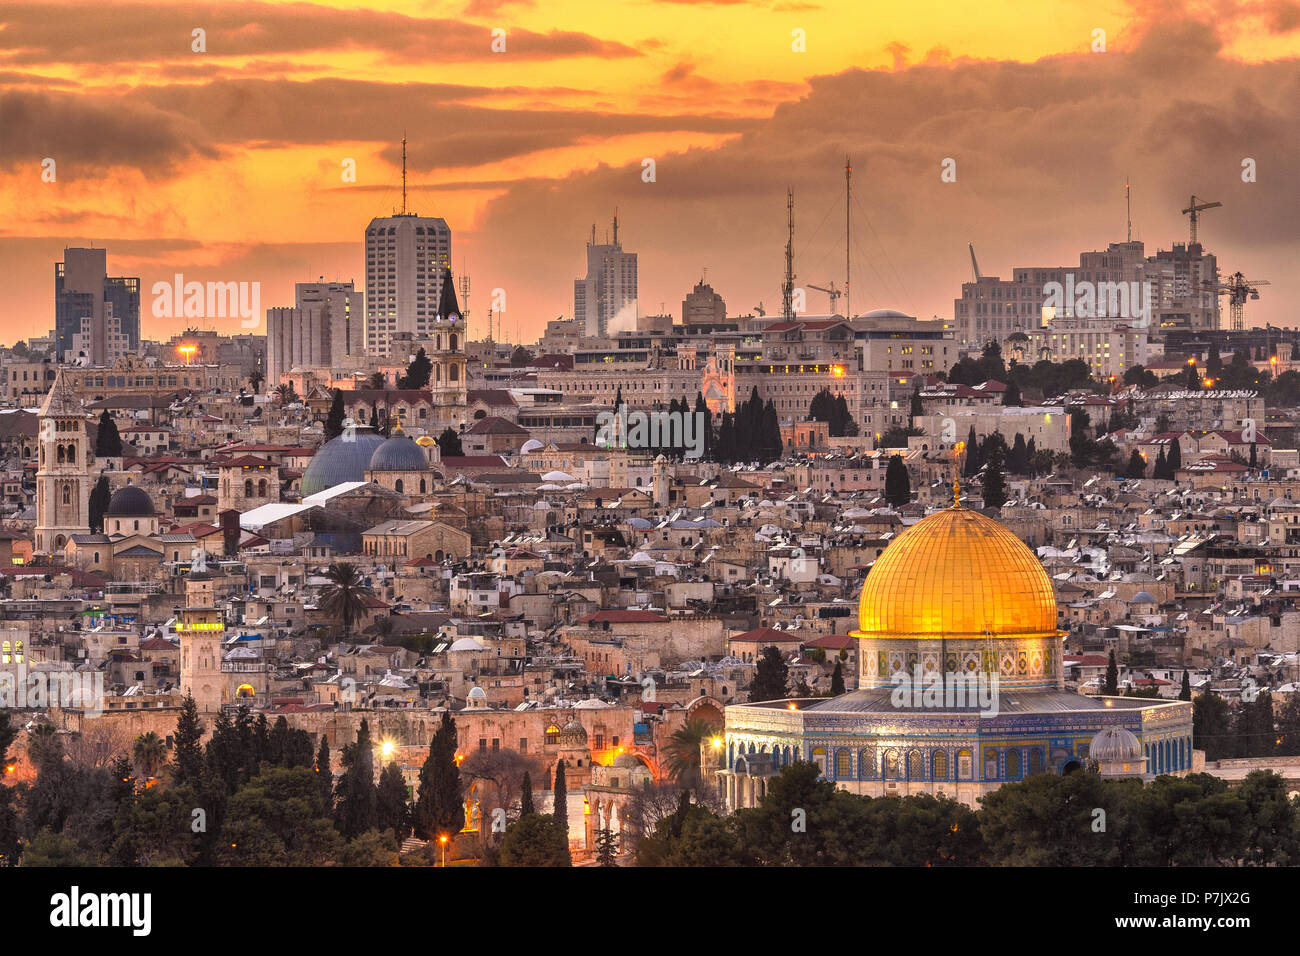 Jerusalem, Israel old city skyline at dusk from Mount of Olives. - Stock Image